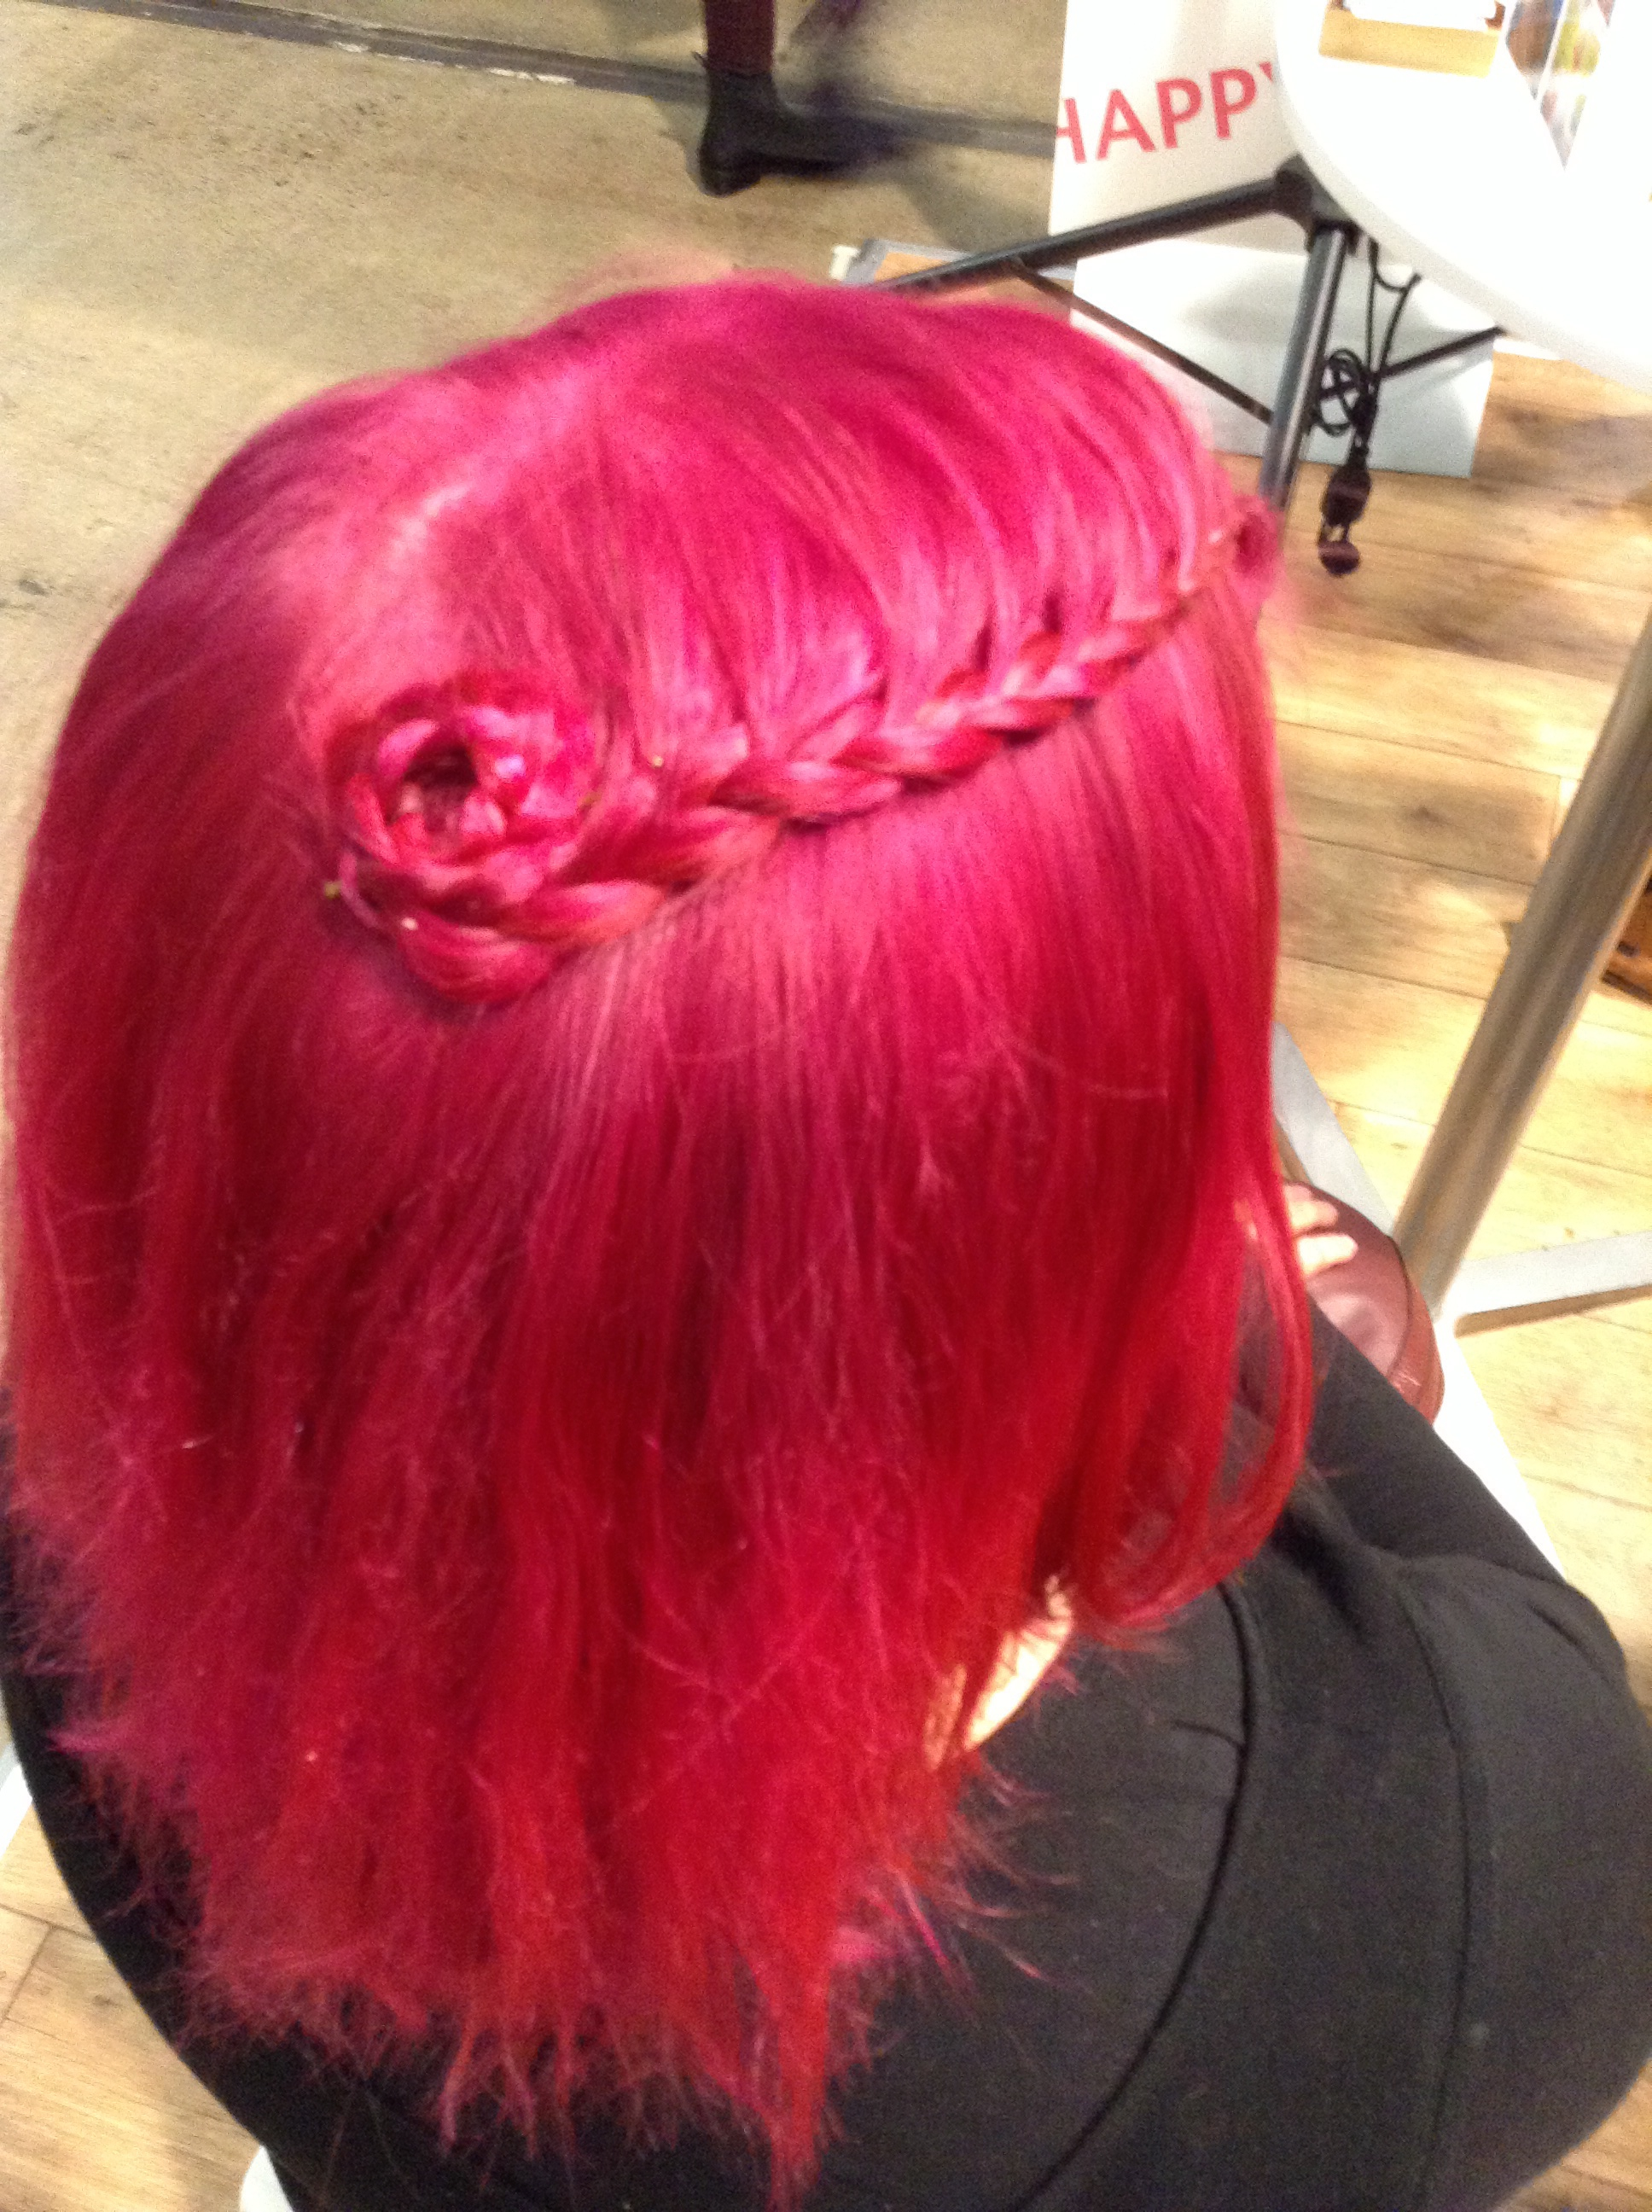 lace braid, rosette, short hair, pink hair